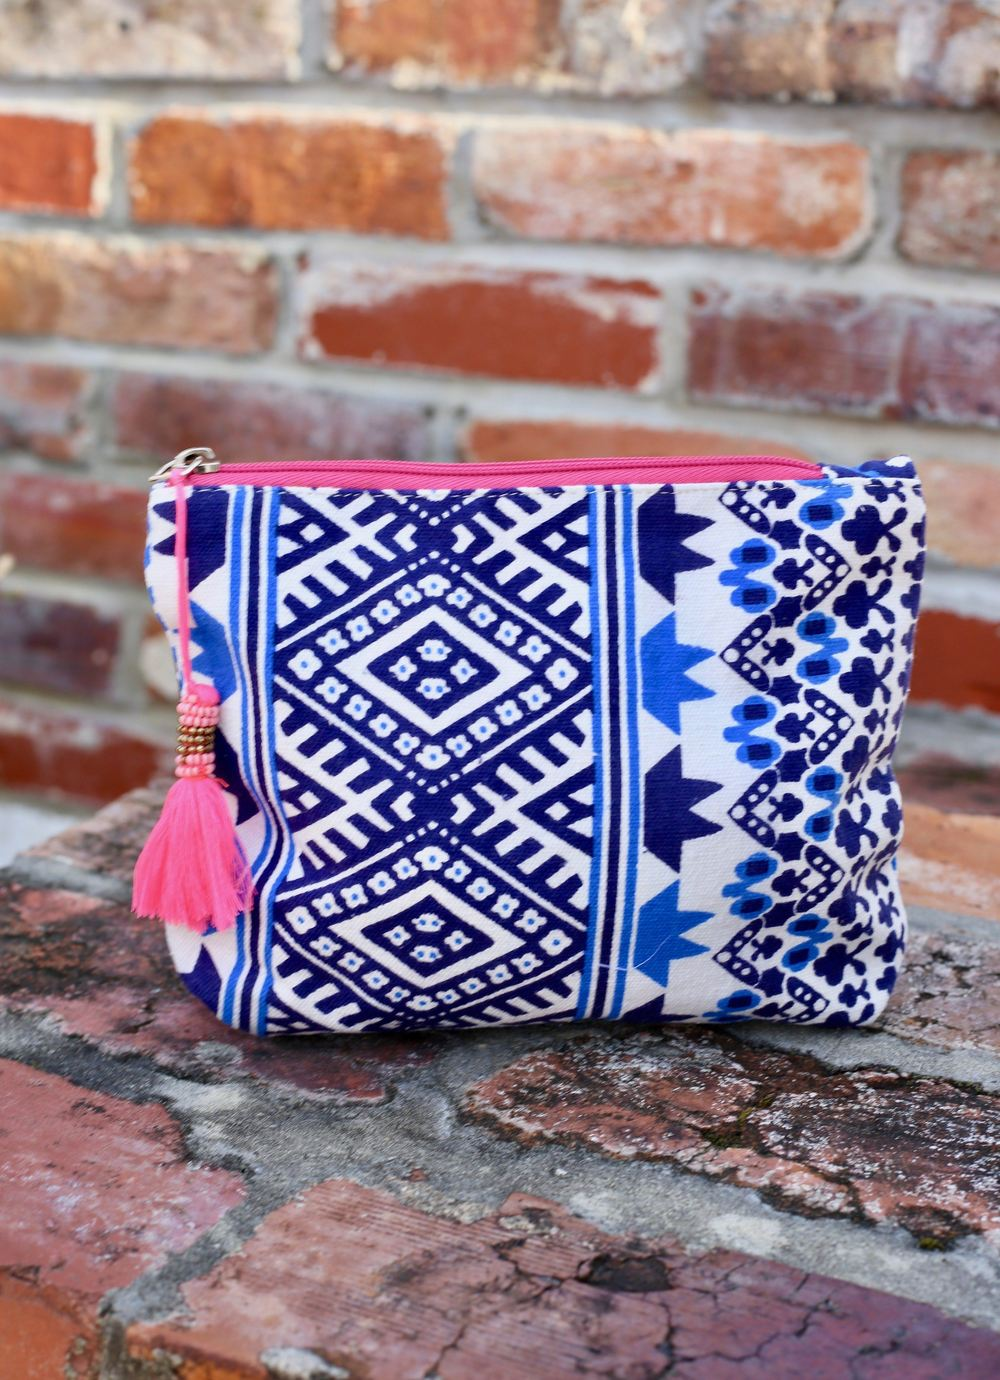 Carnival Cruise Cosmetic Bag India Navy